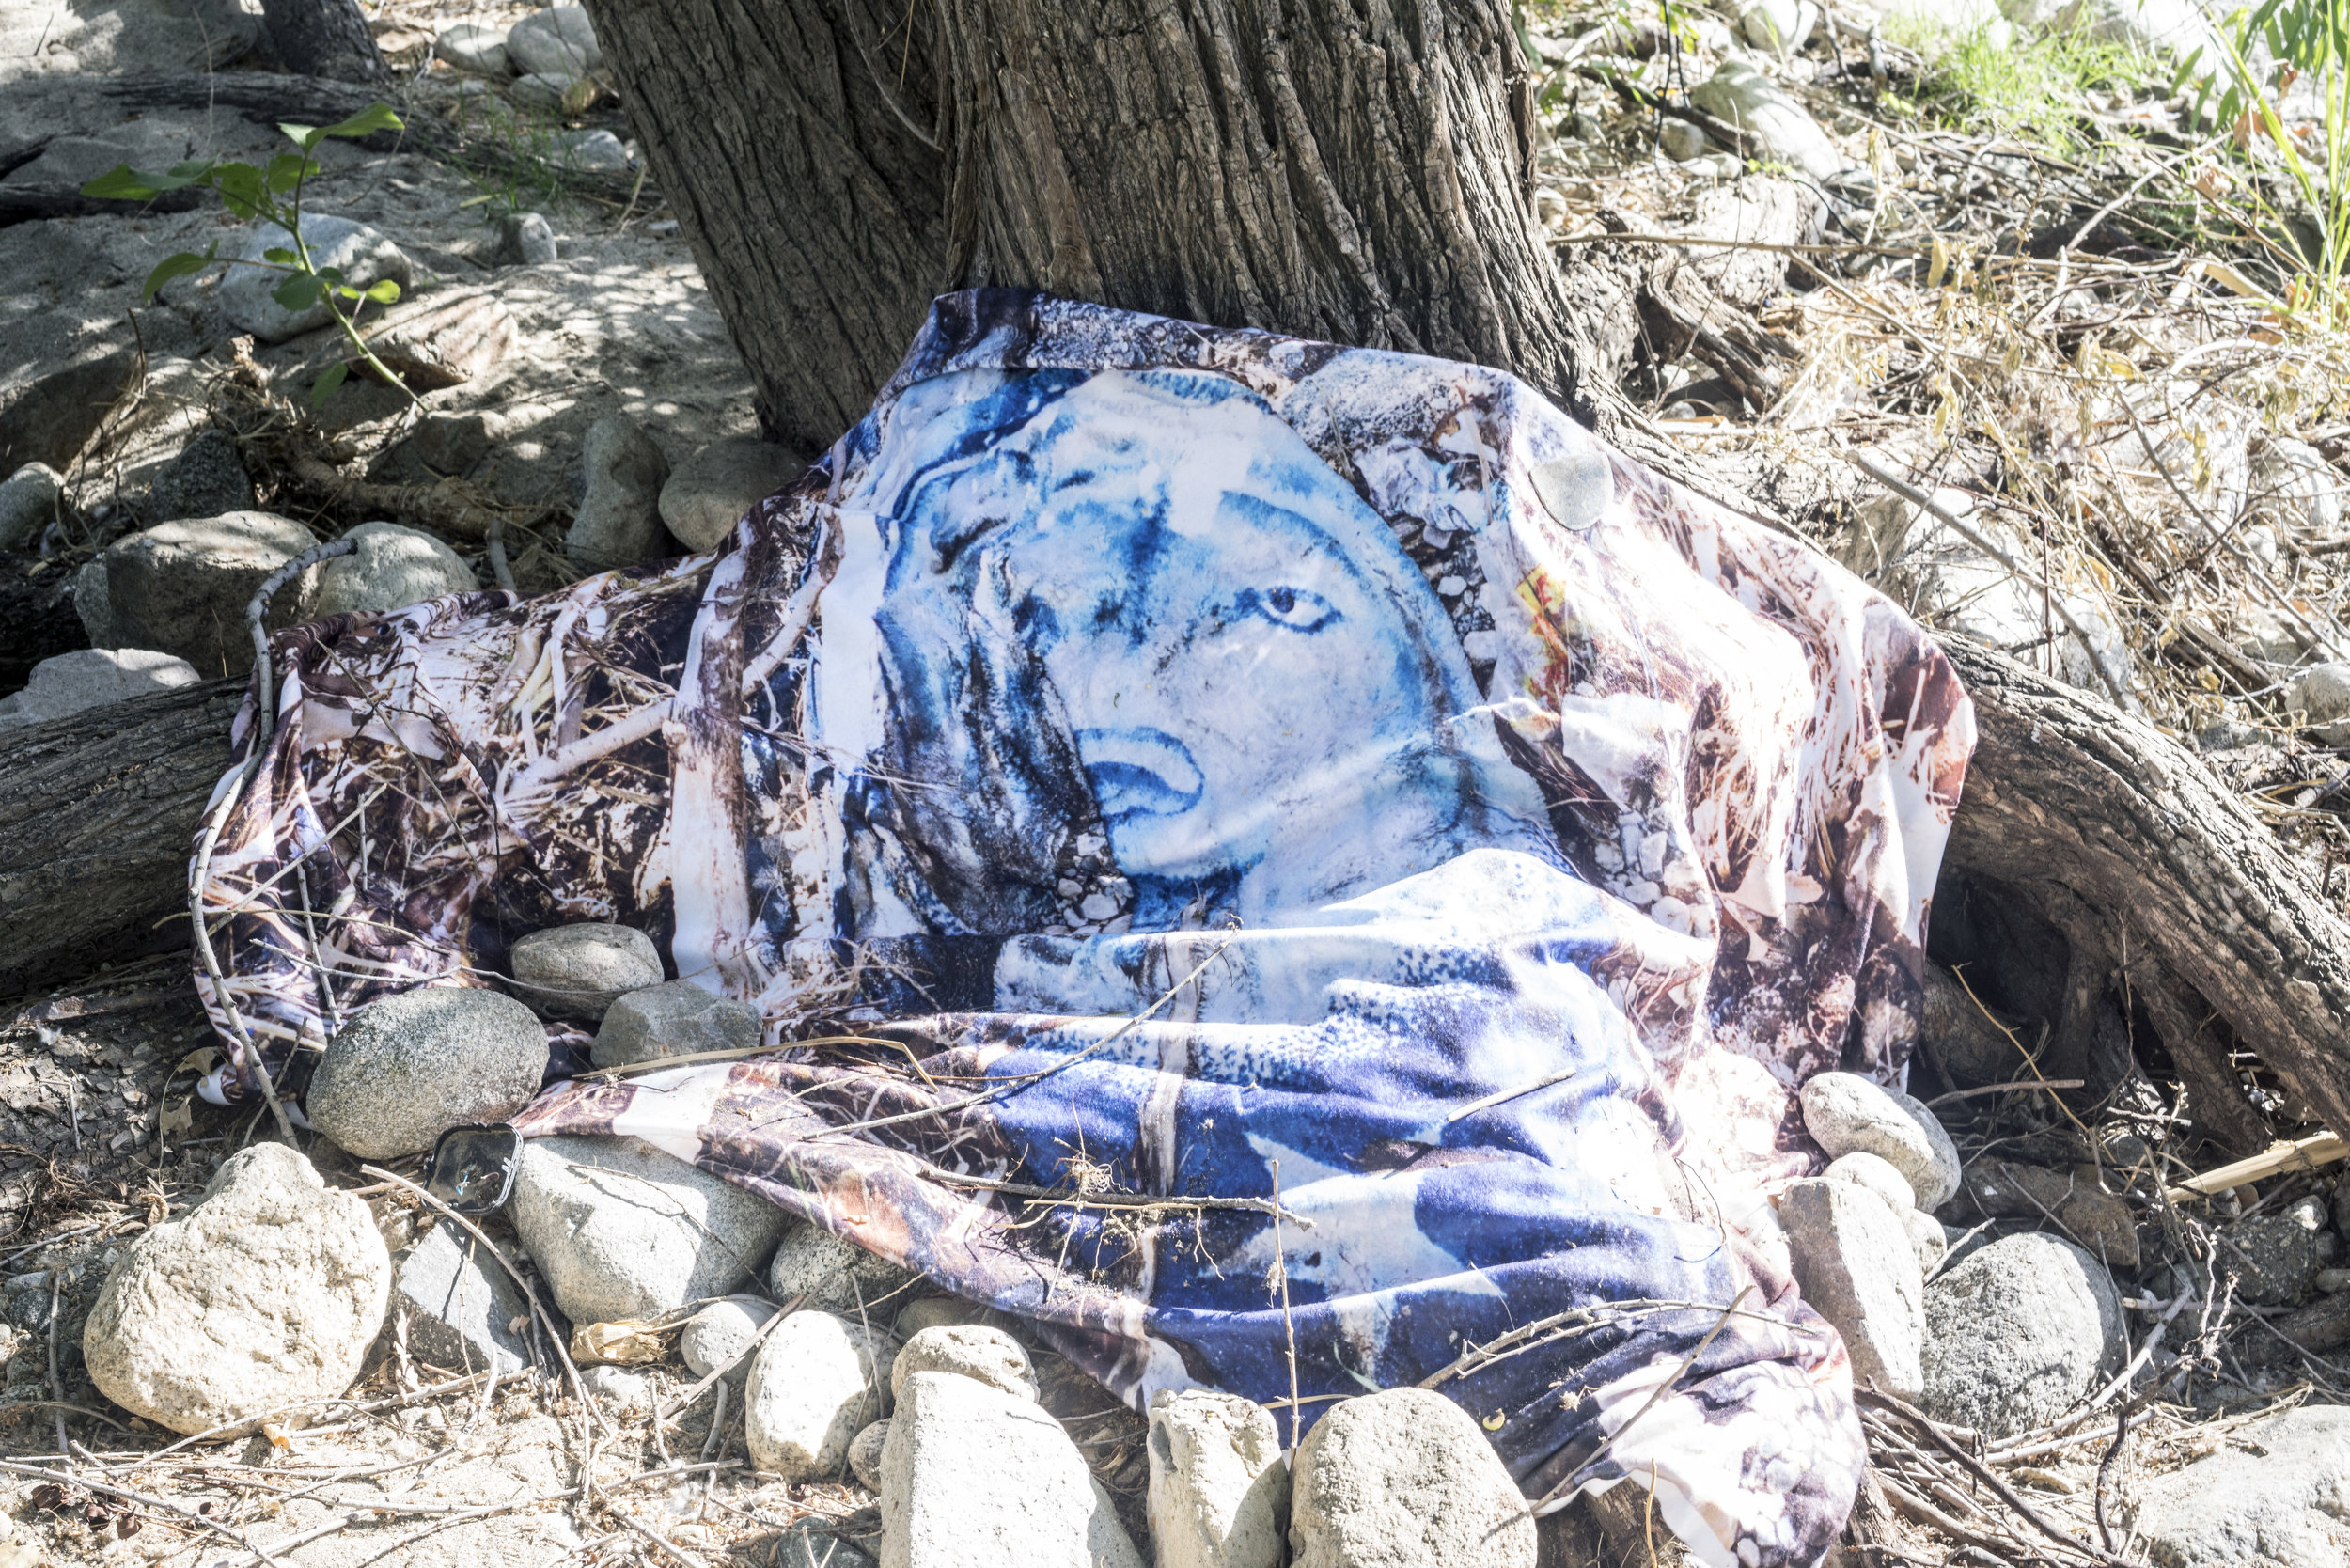 Install at the river. Photo printed onto blanket.